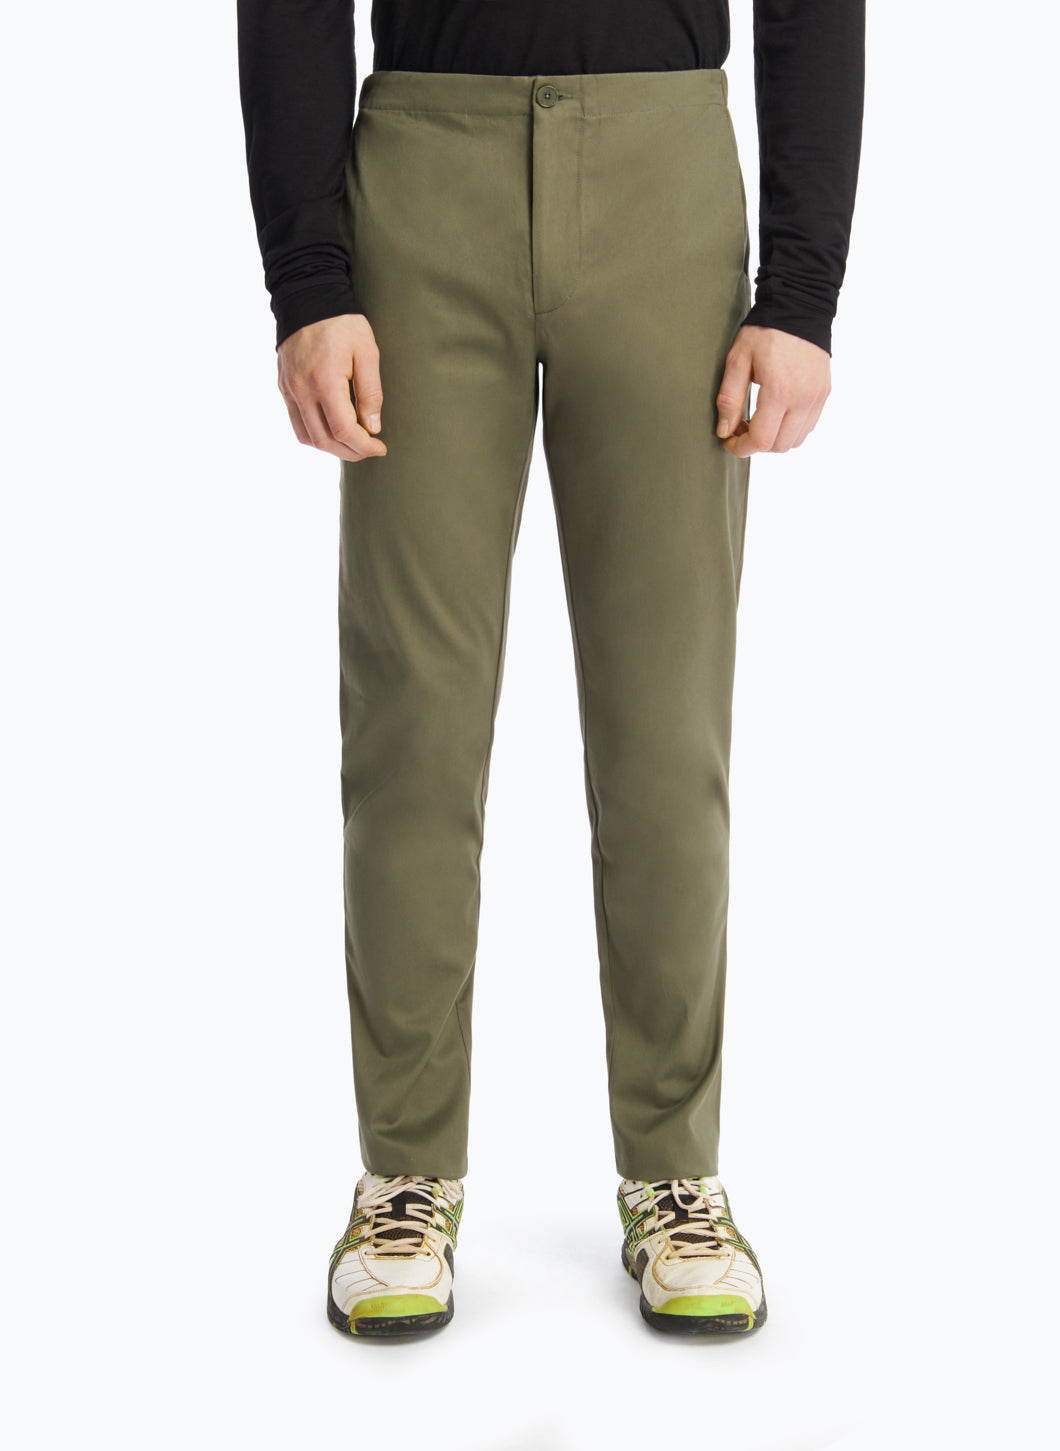 Pants with Notched Pockets in Olive Cotton Gabardine